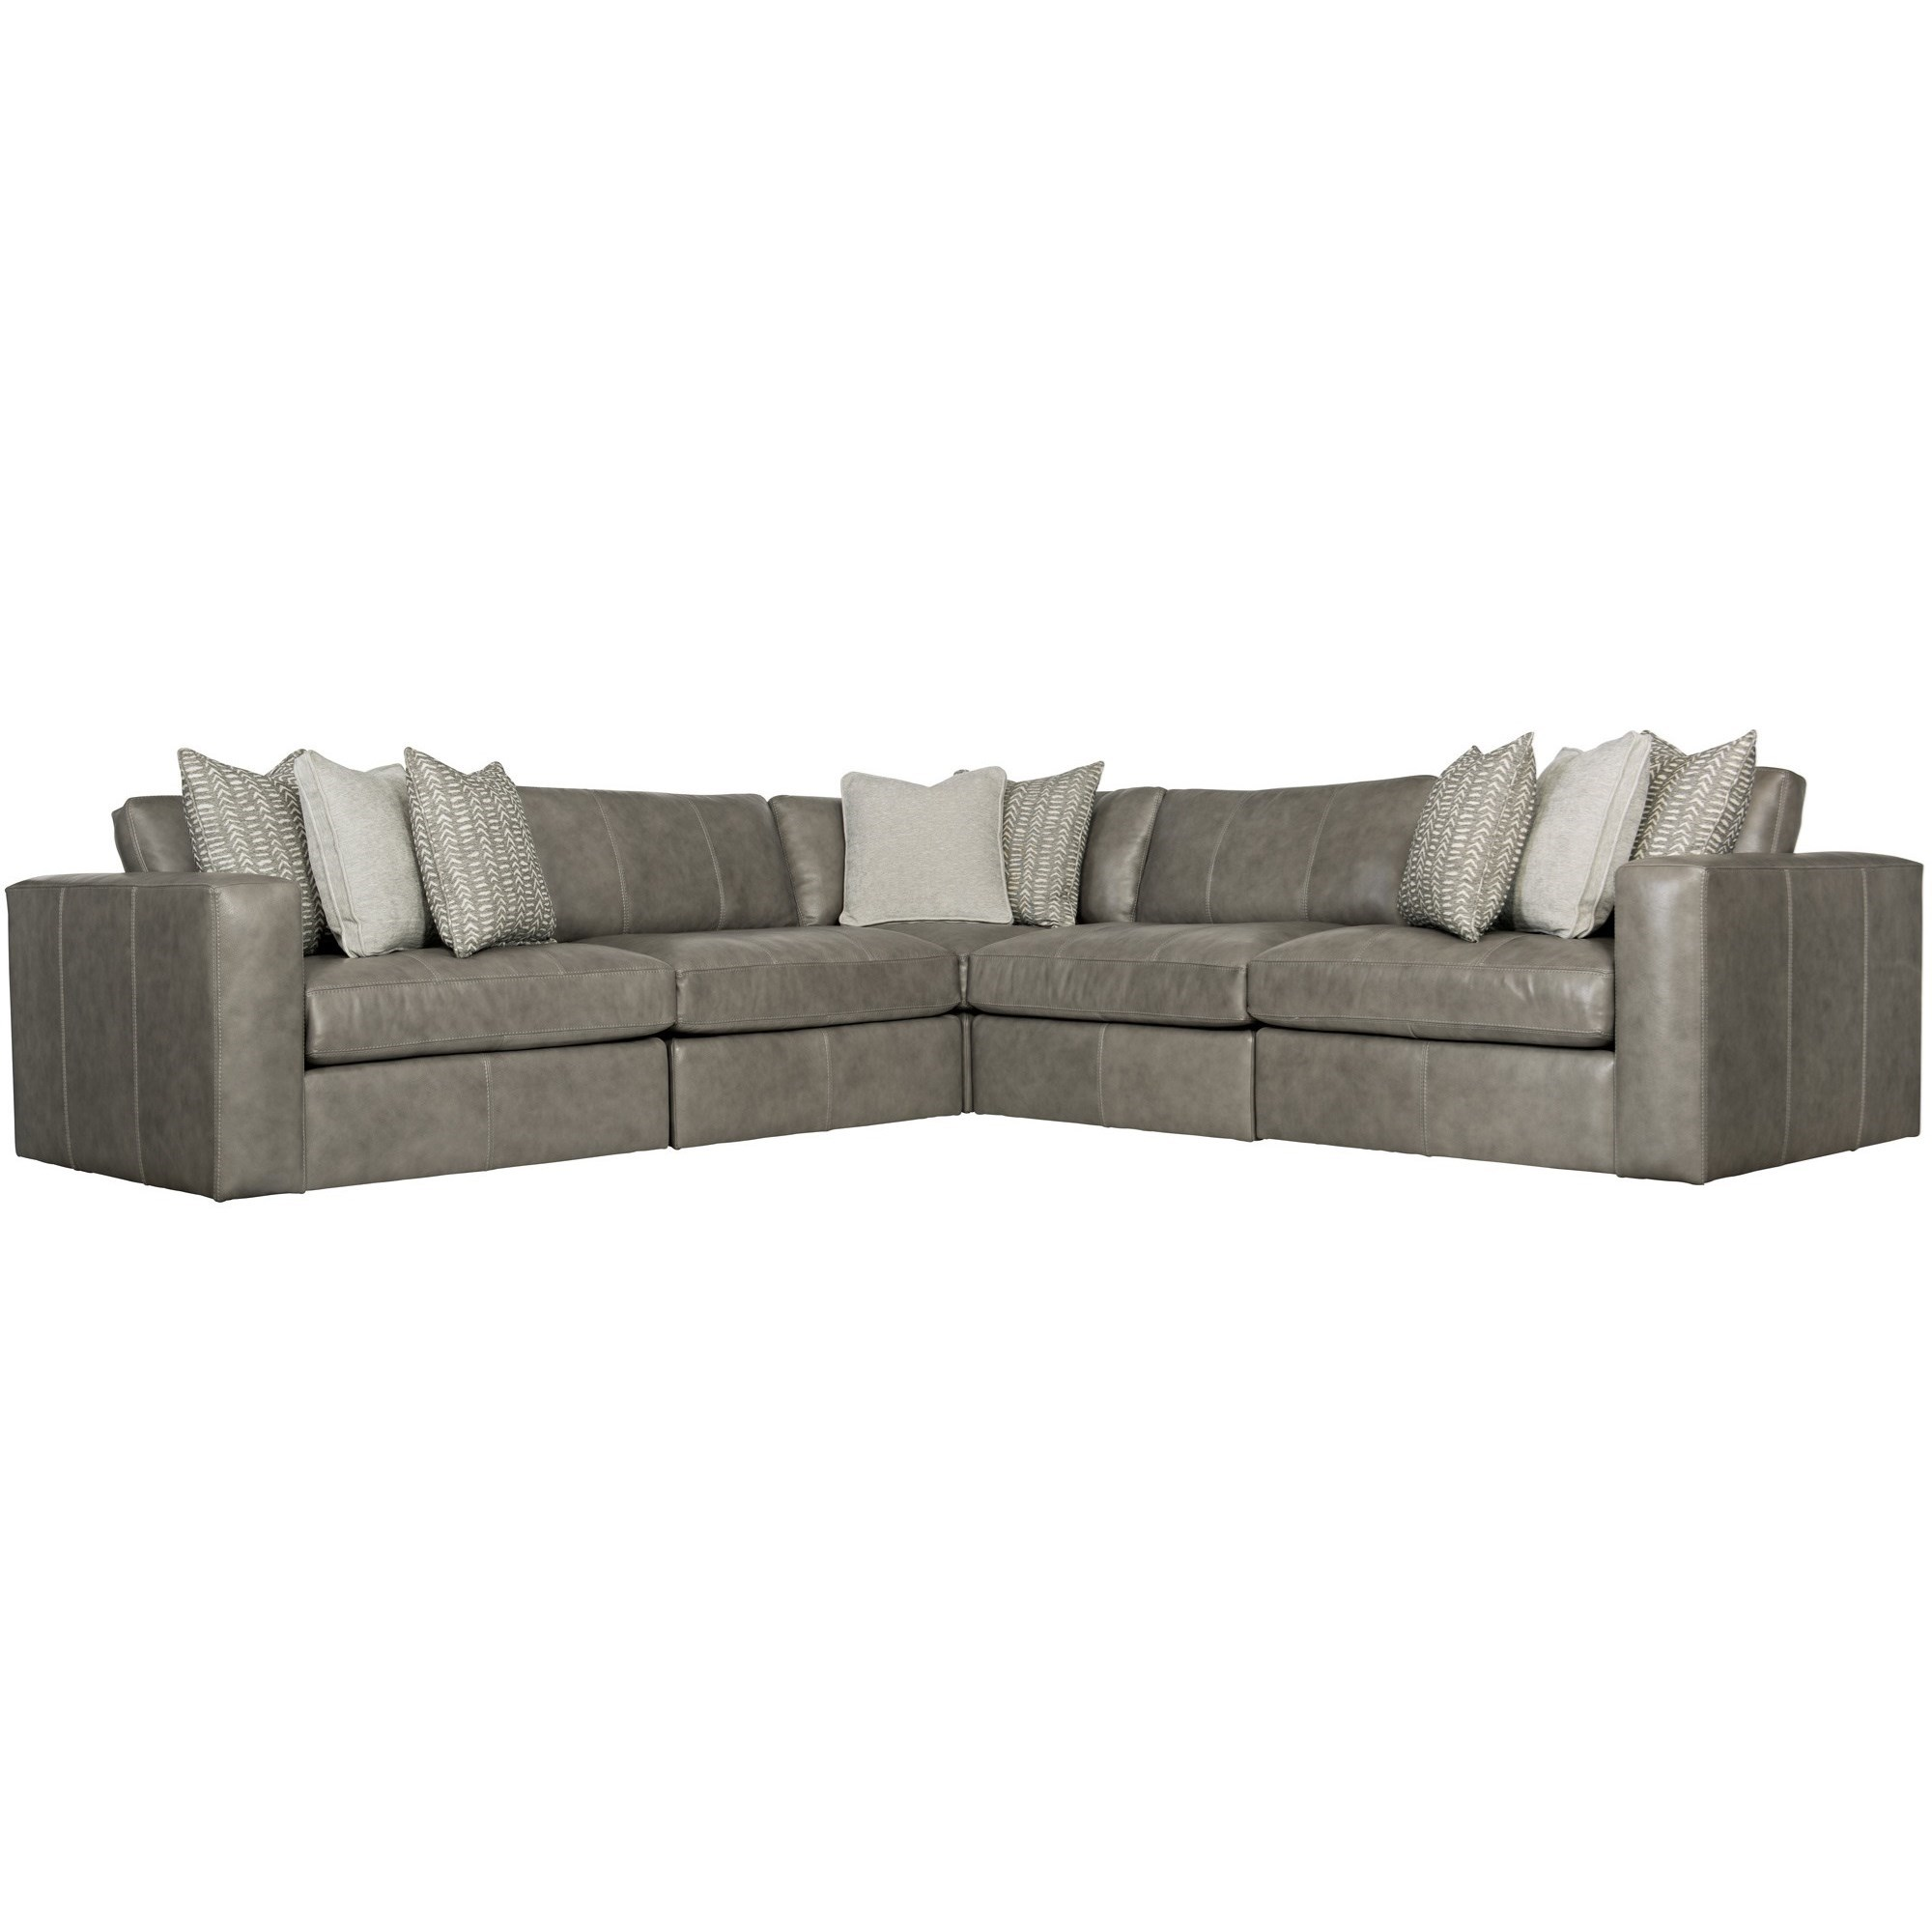 Stafford Five Seat Sectional by Bernhardt at Baer's Furniture